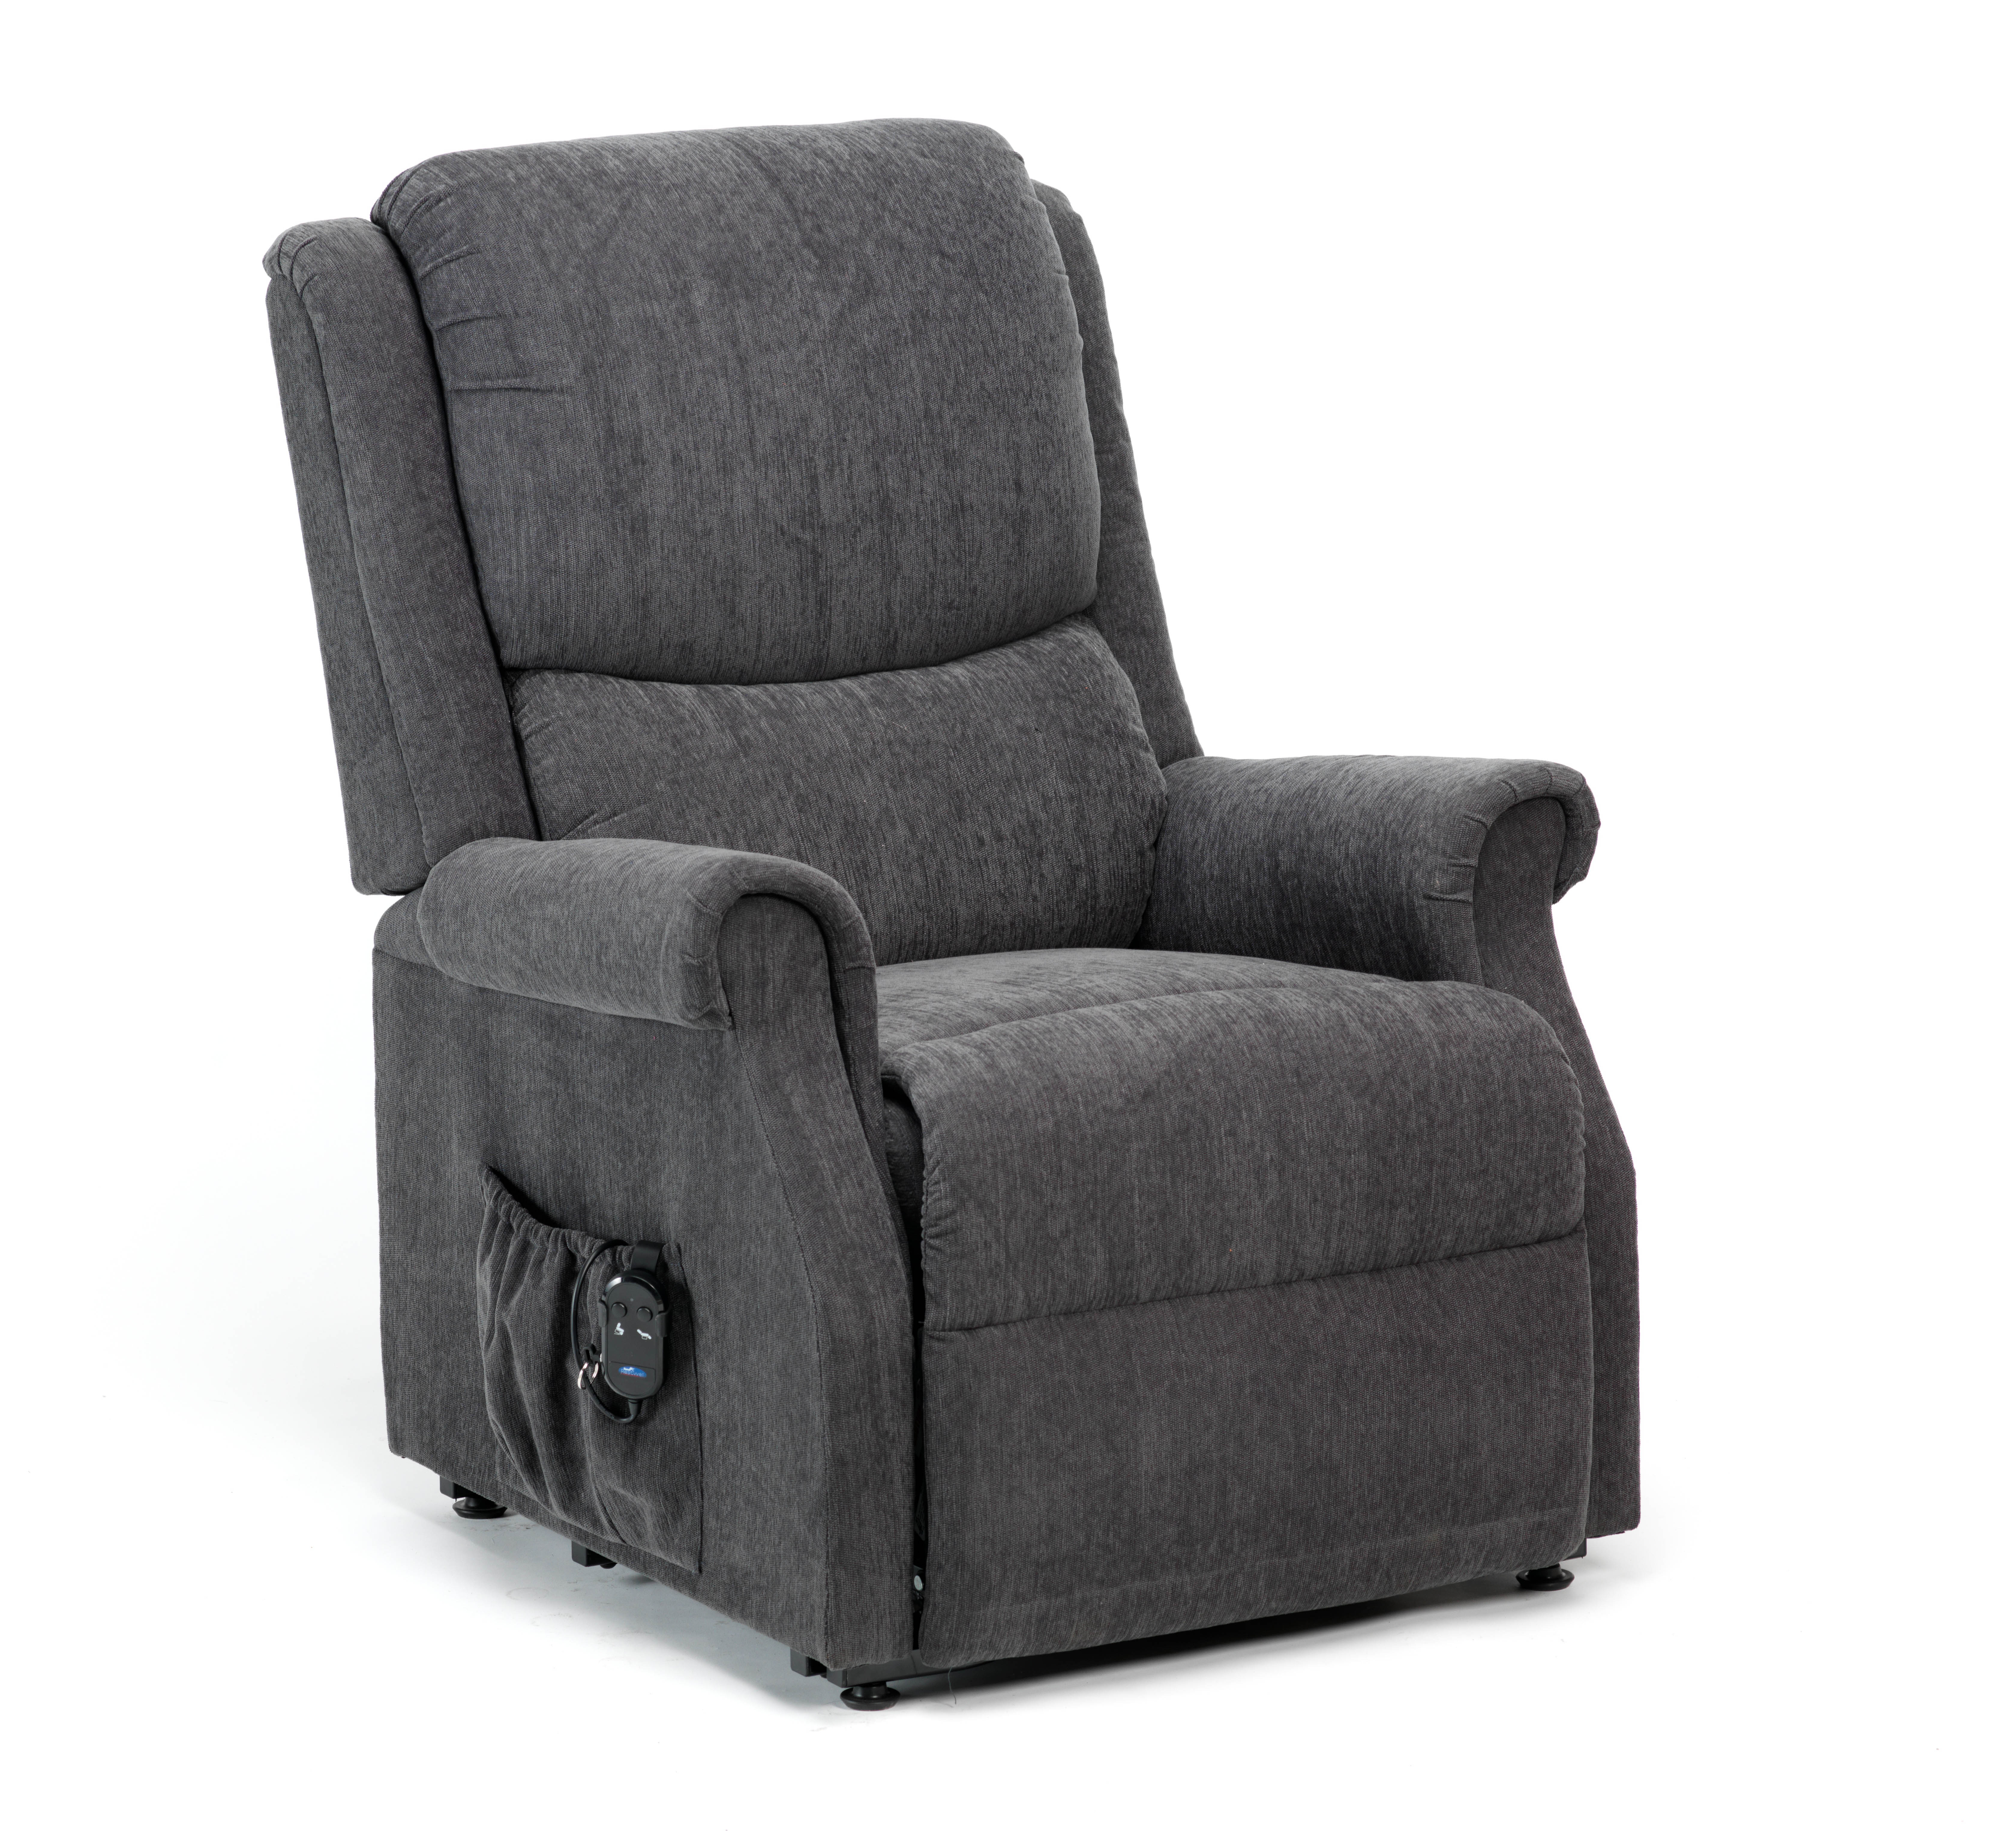 grey fabric riser recliner riser recliner chairs in stoke on trent